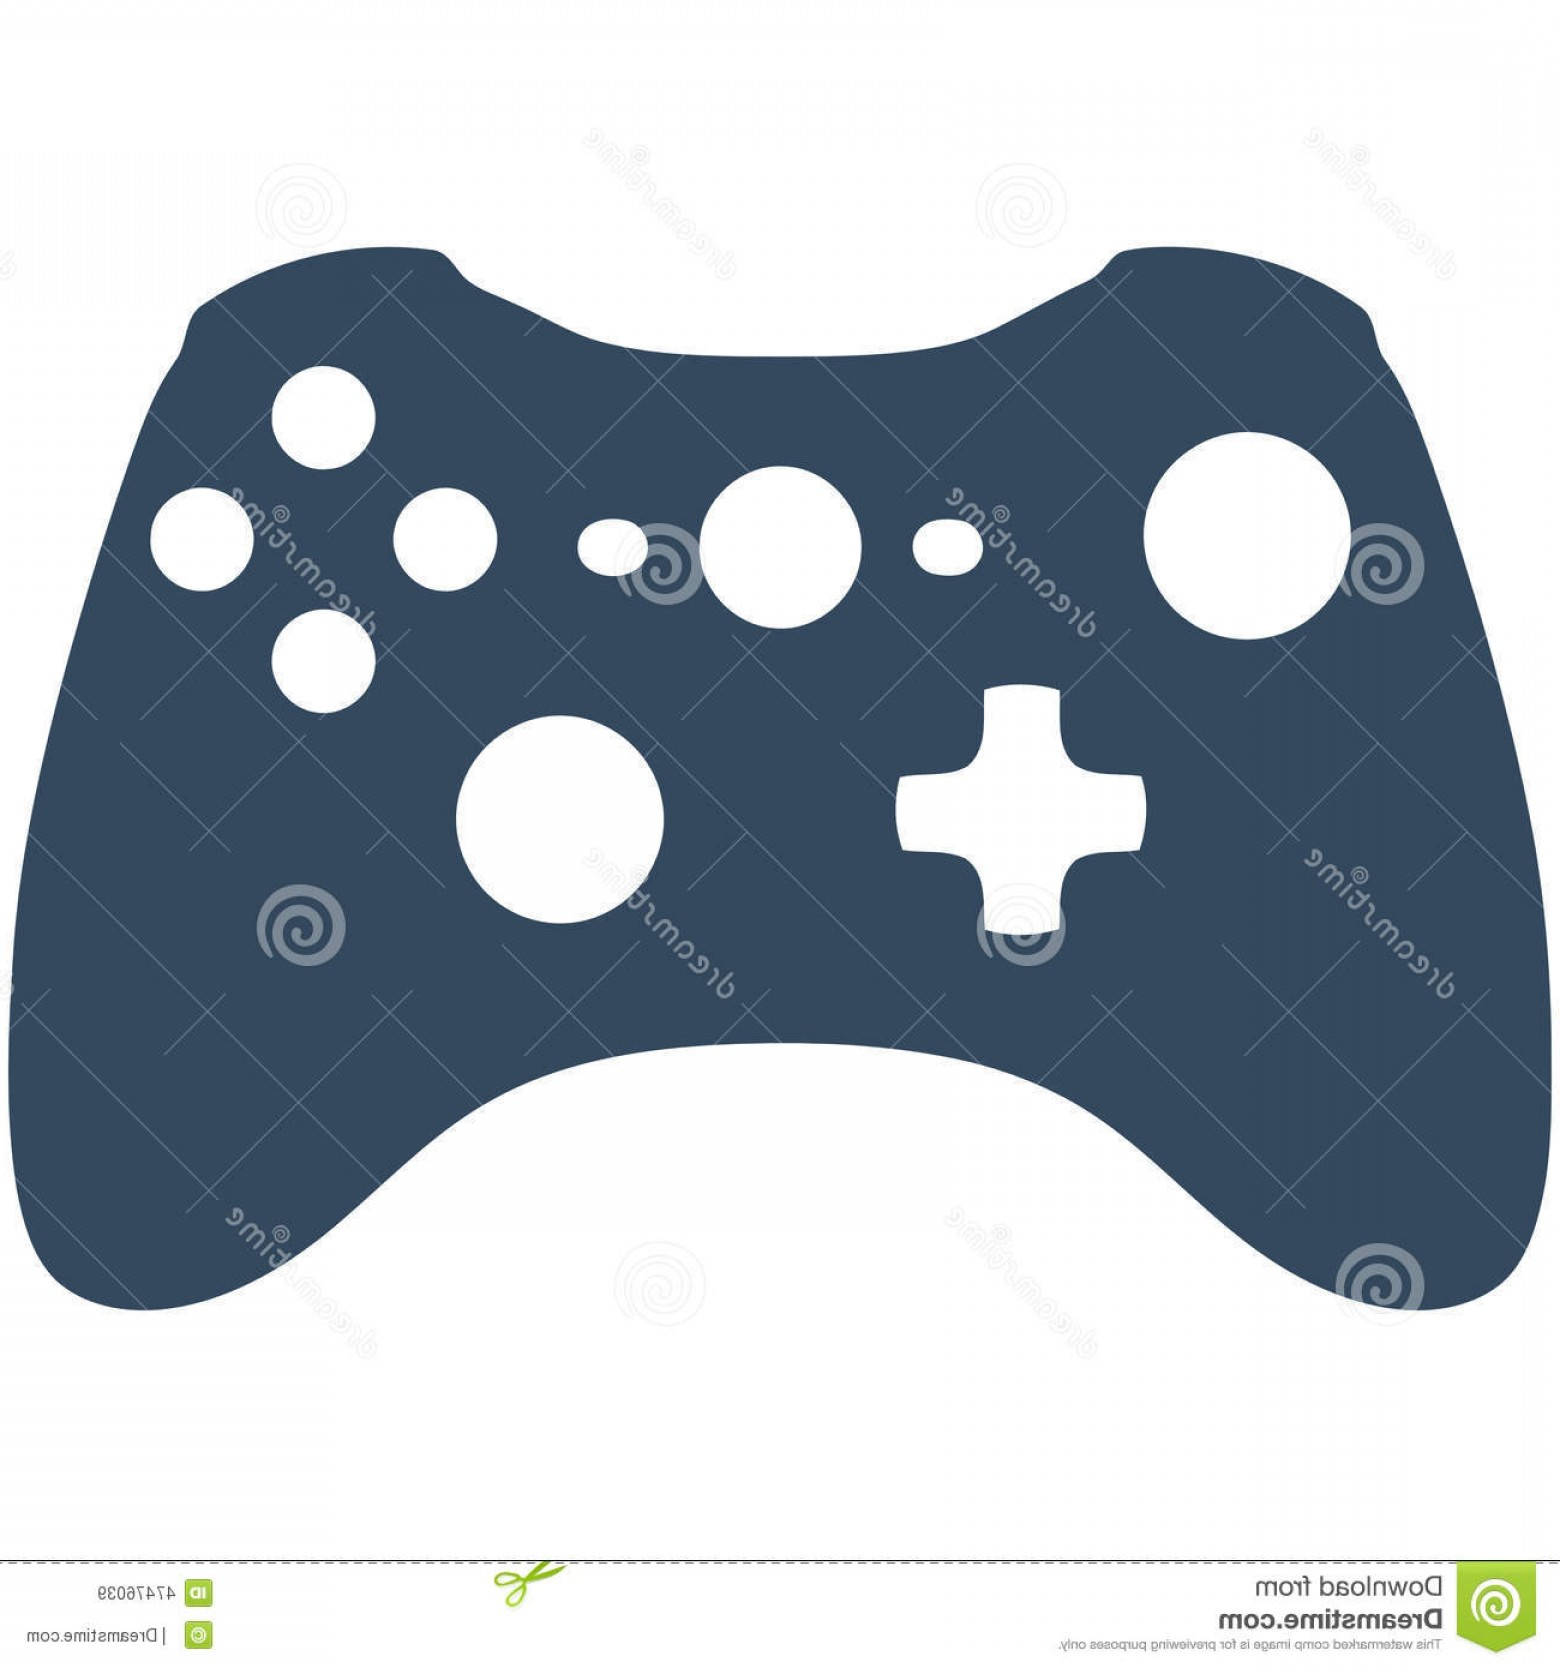 Xbox Game Controller Vector: Stock Illustration Xbox Game Controller Vector Silhouette Ideal Webpage Icons Font Image